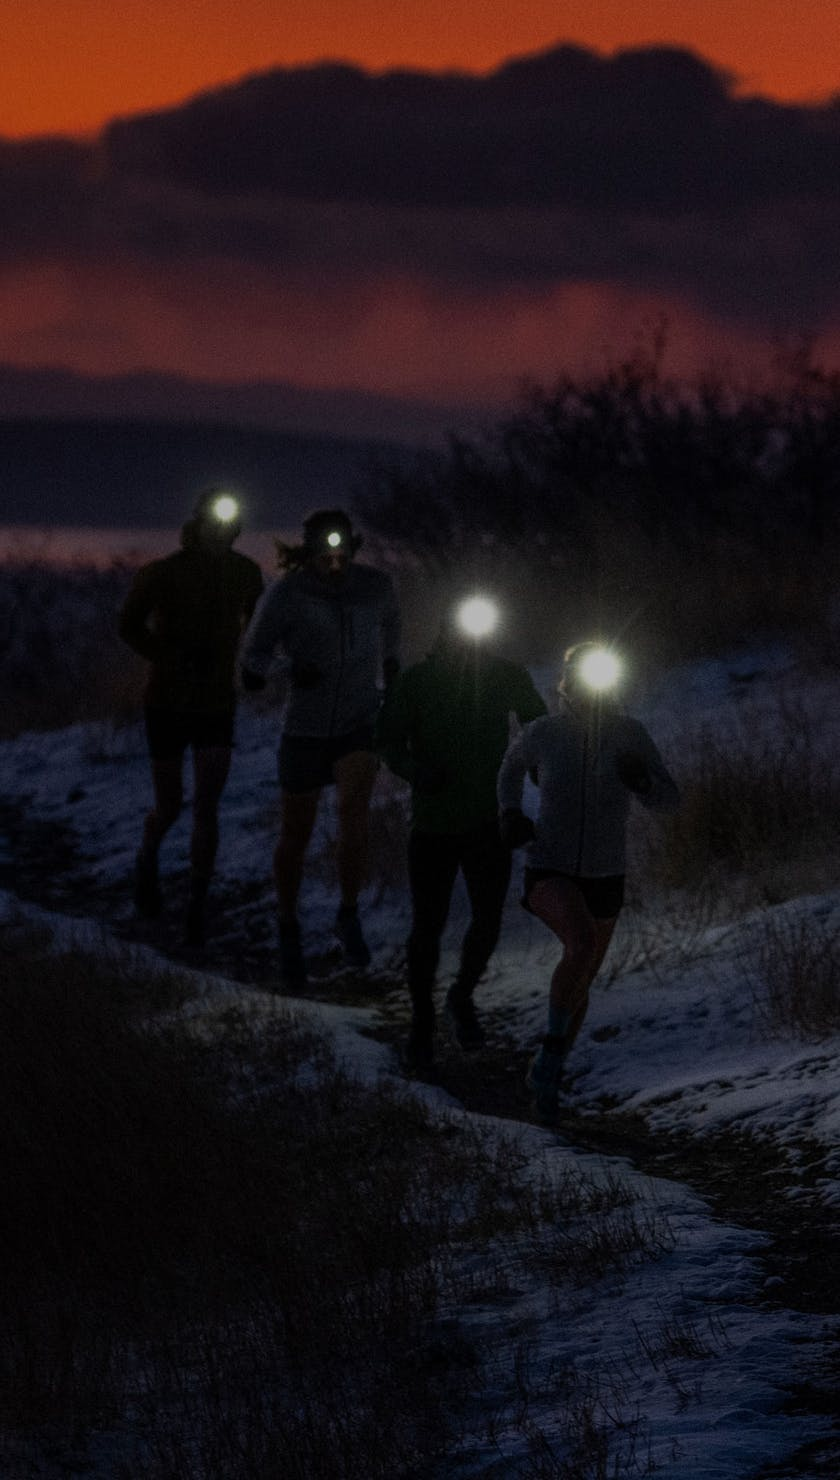 runners going up a trail in the dark with rechargeable headlamps